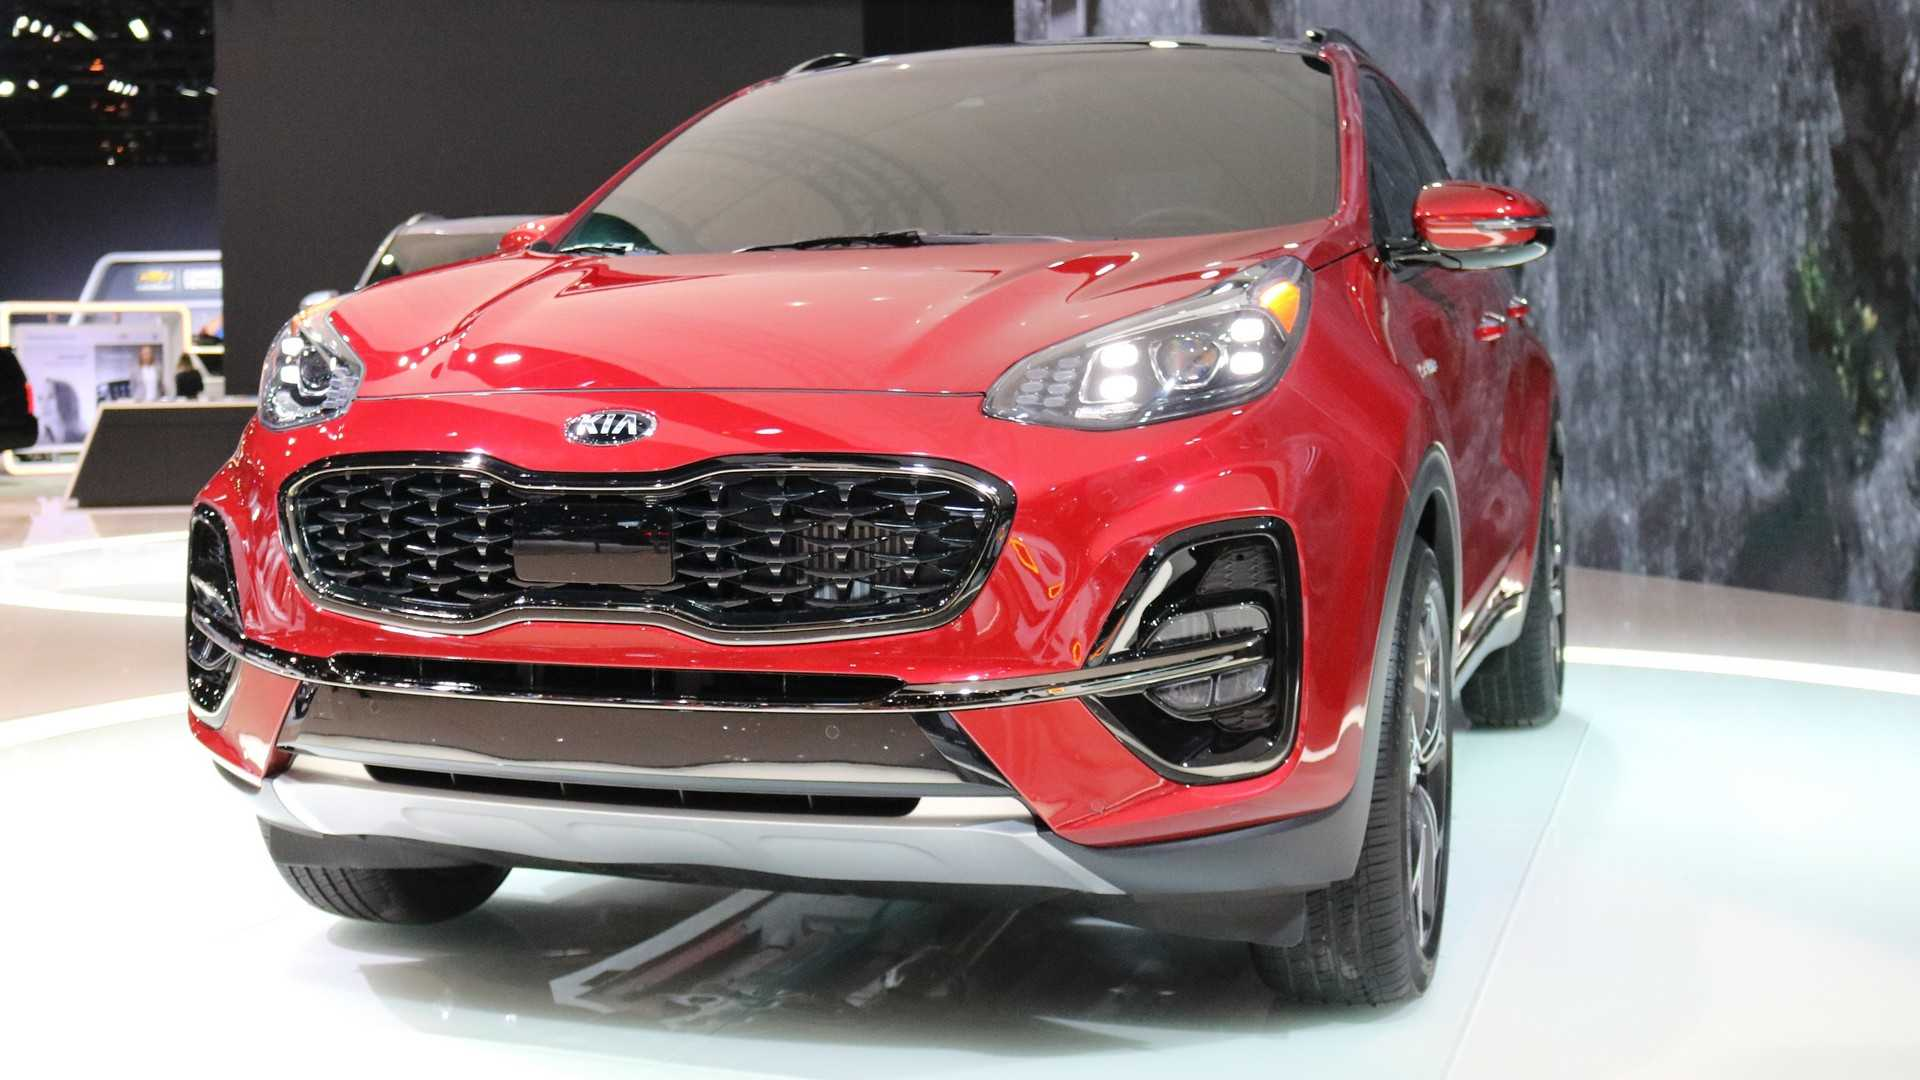 South Korean automotive giant Kia Motors has unveiled a mid-generational refresh of its Sportage crossover utility vehicle